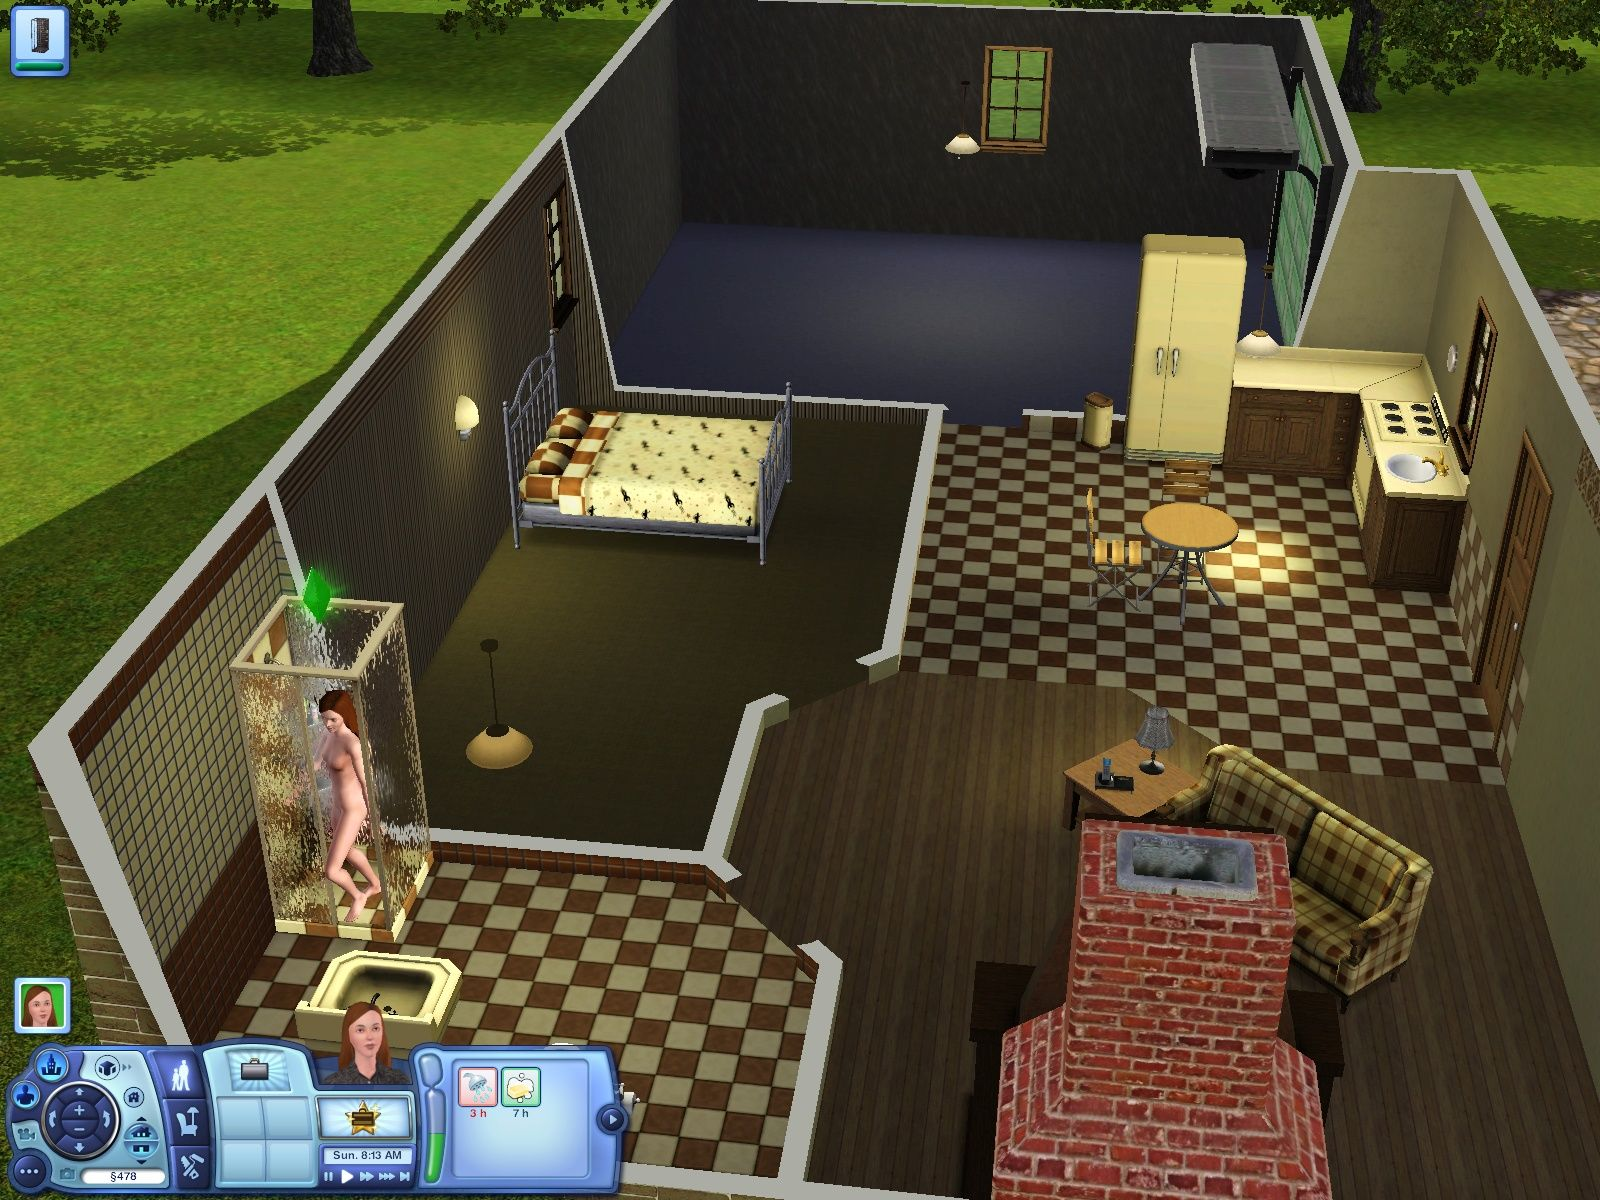 The Sims 3 Windows Don't look in the lower left corner - it's not officially there. Instead focus on decoration of the rest of the house.